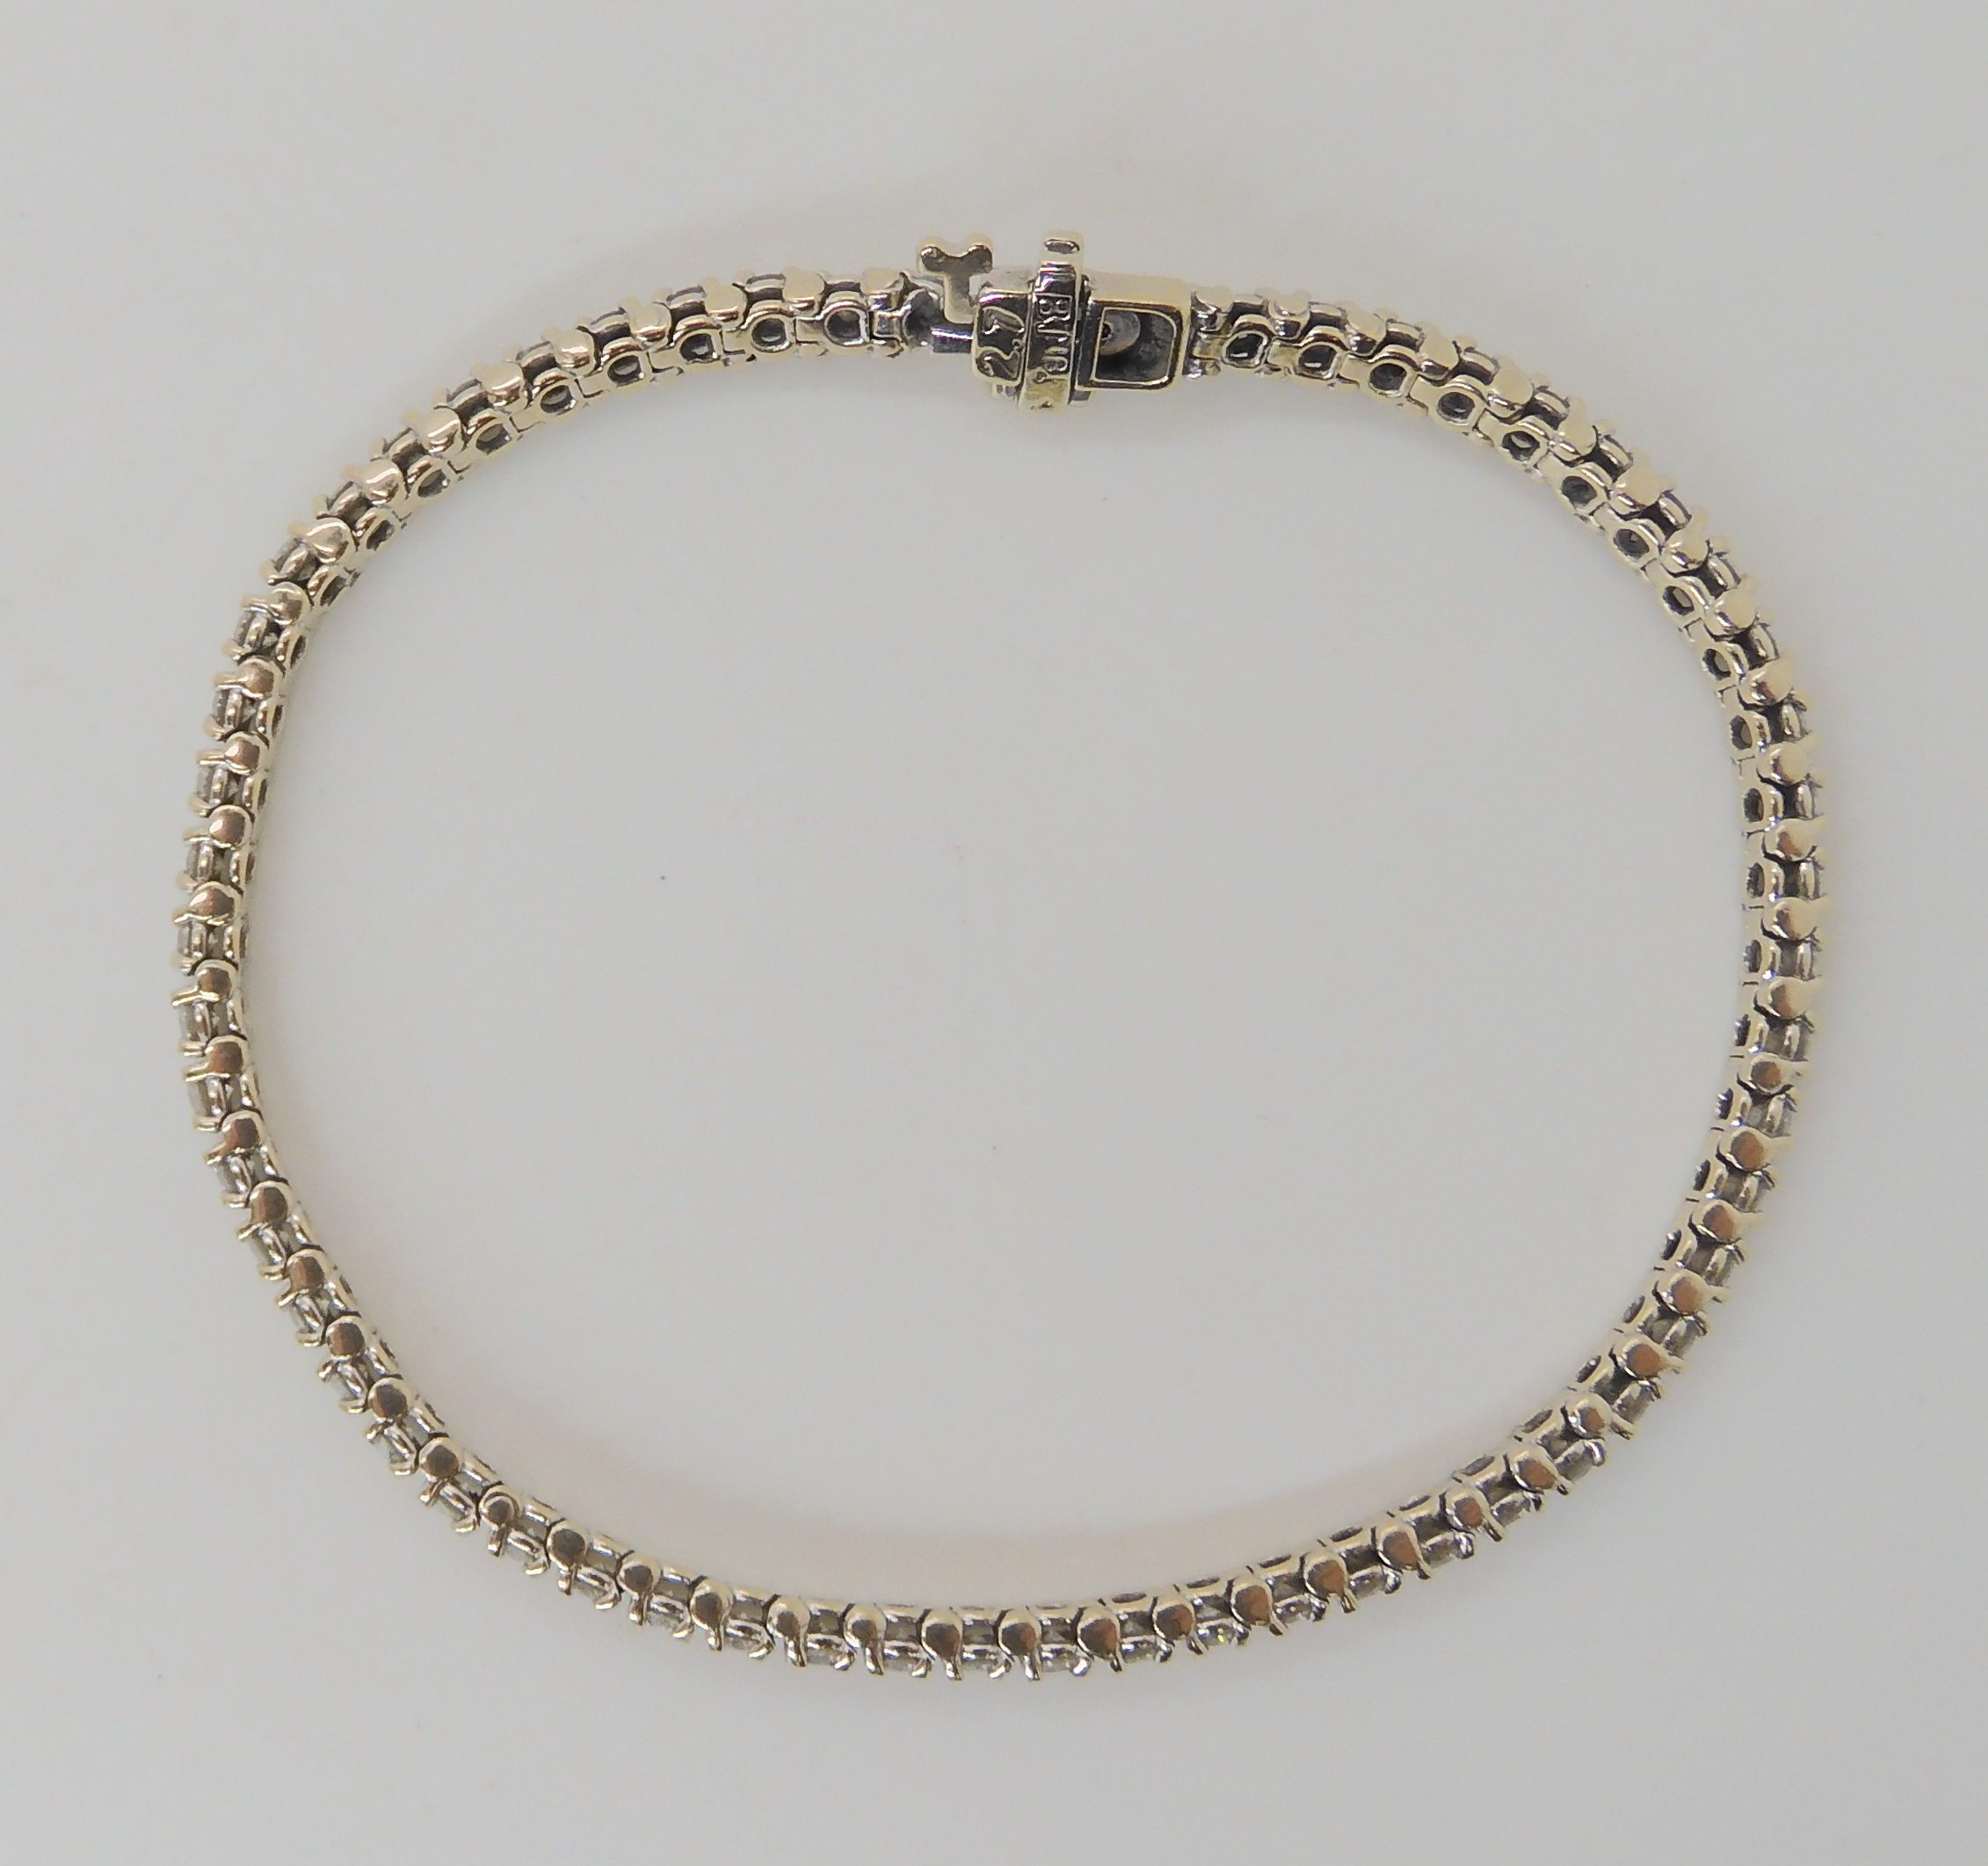 AN 18K WHITE GOLD DIAMOND LINE BRACELET set with estimated approx 2.7cts of brilliant cut - Image 4 of 5